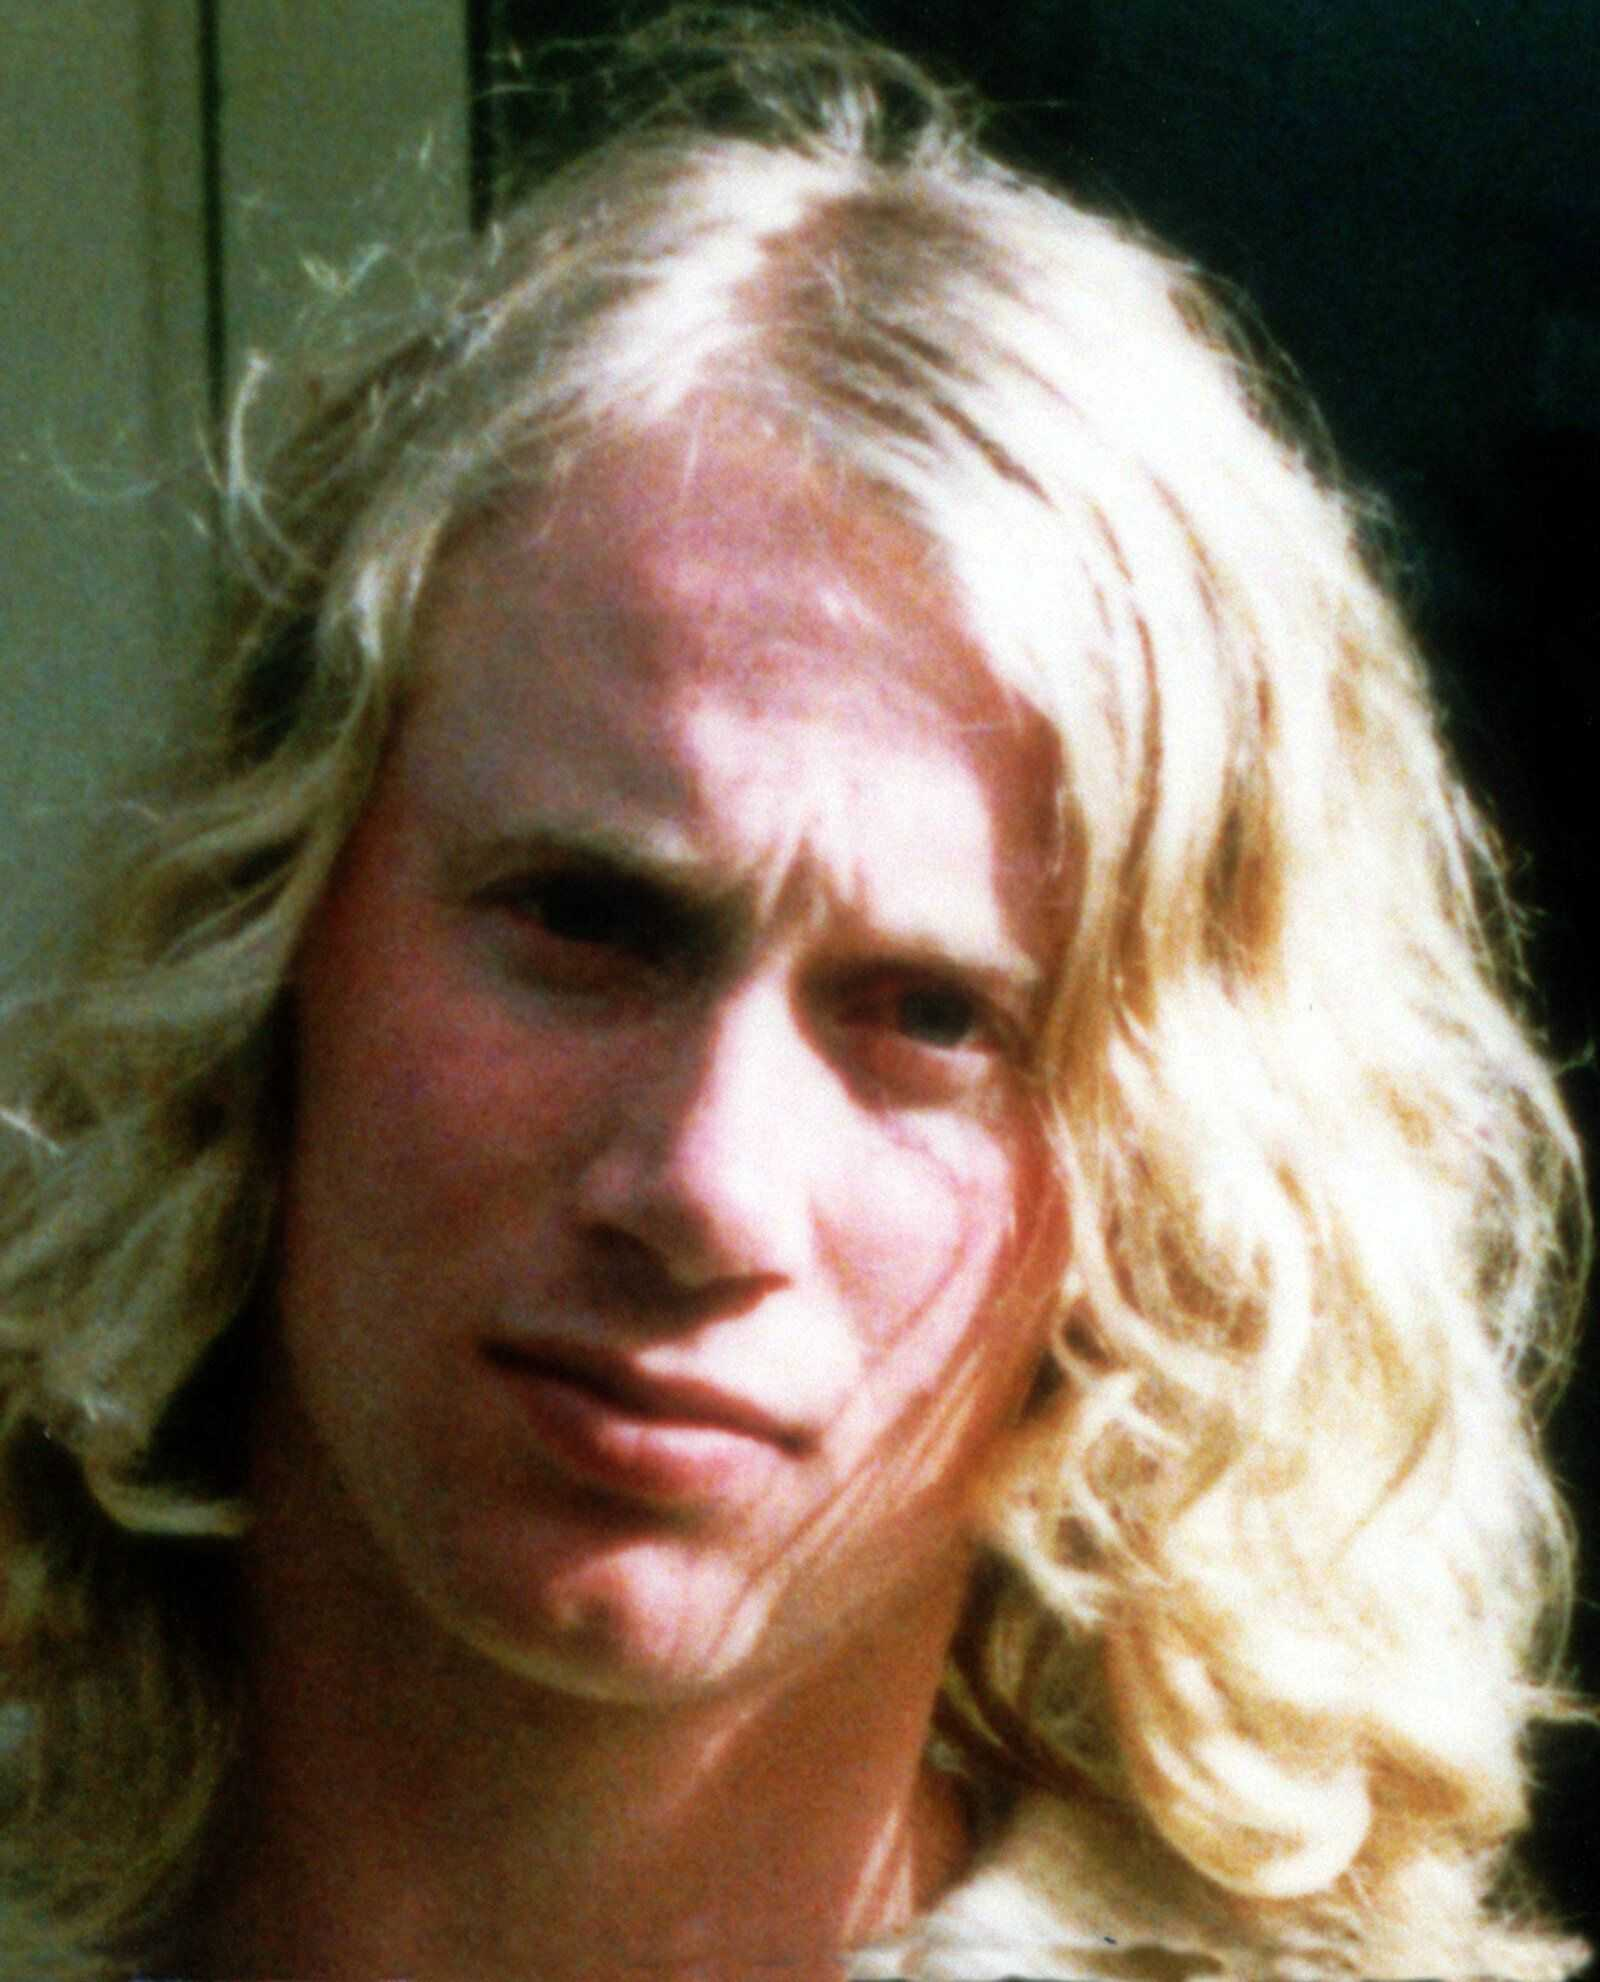 Martin Bryant pleaded guilty November 7, 1996 to all 35 murders at the Port Arthur historic site in April...